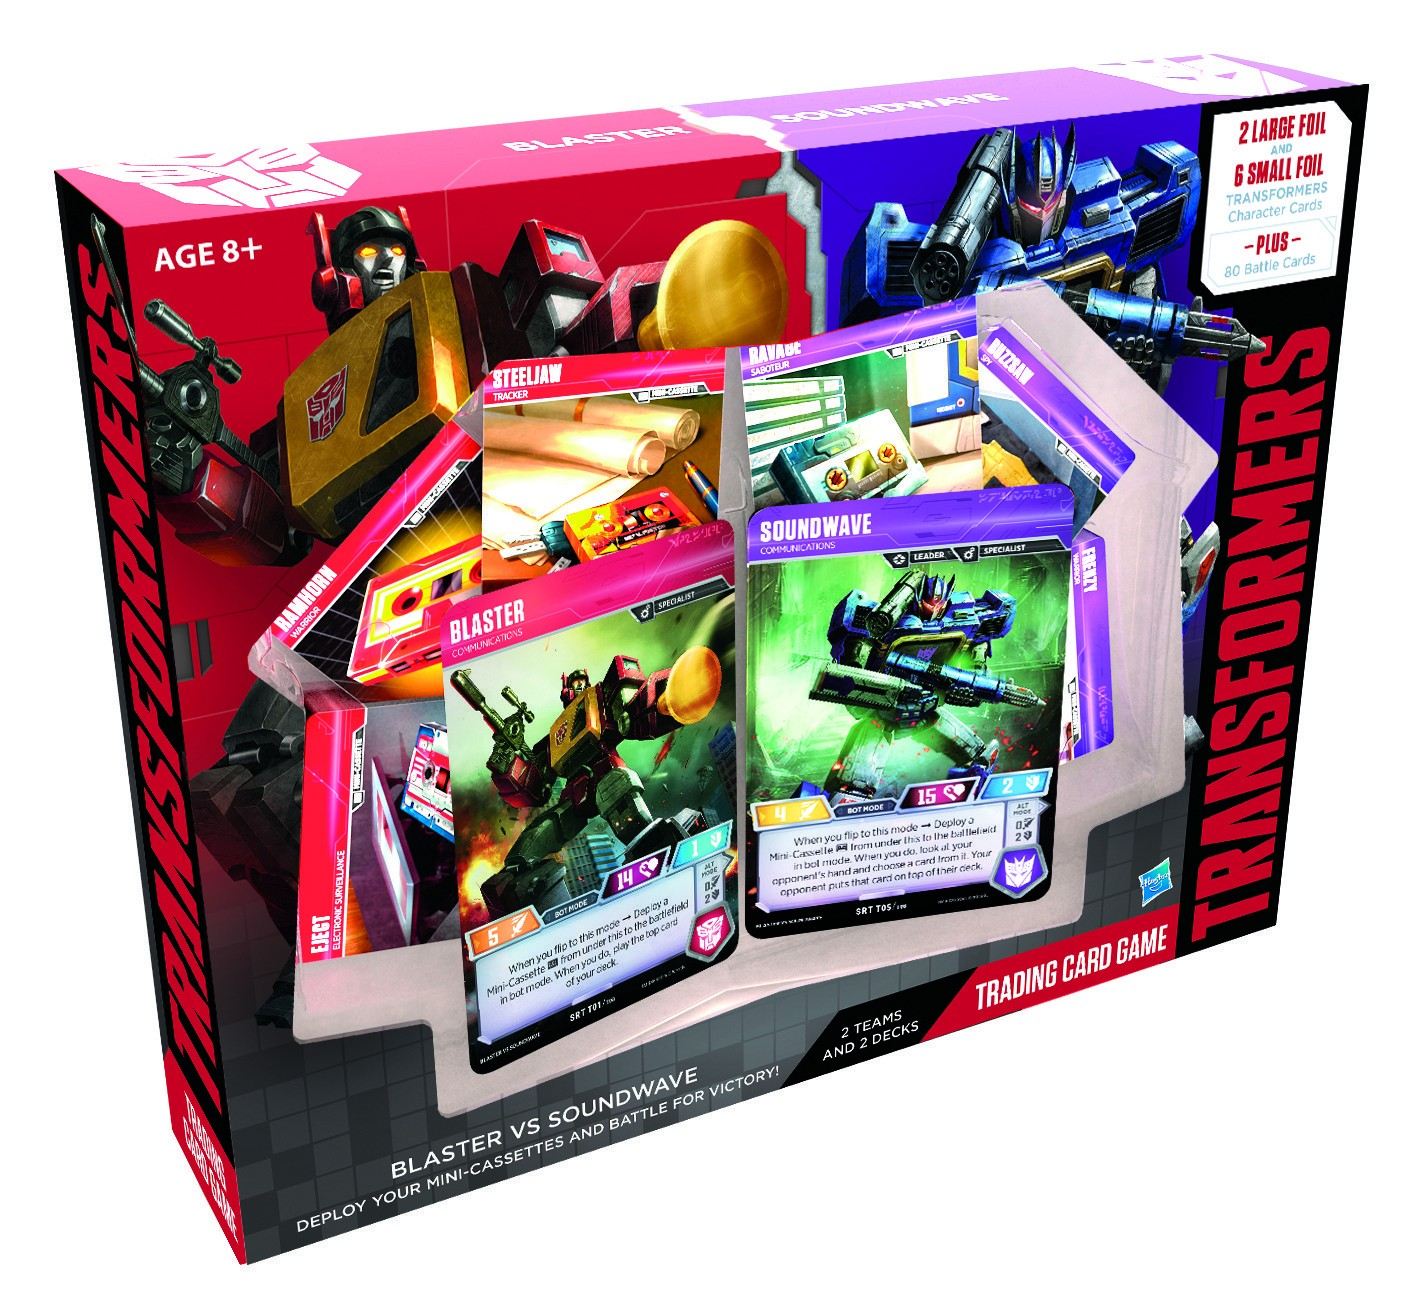 Transformers Trading Card Game Blaster vs Soundwave Pack Retail